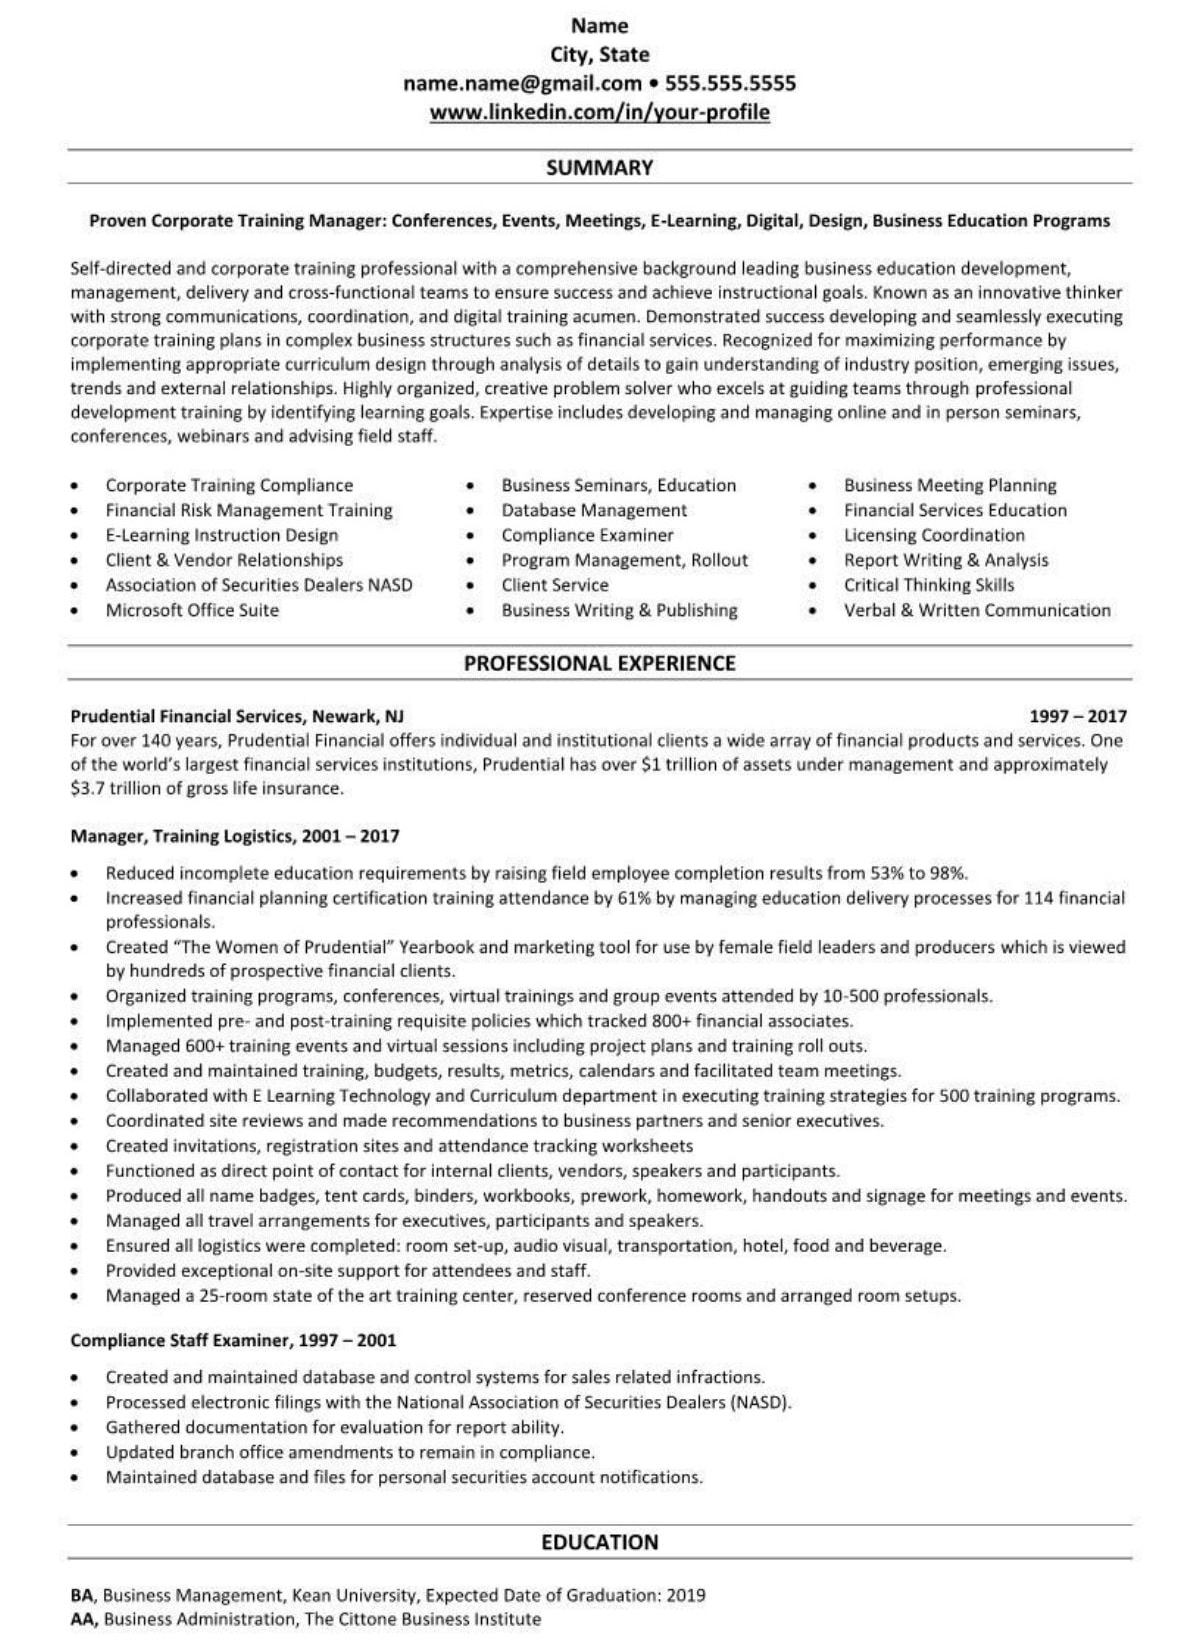 Professional executive resume example Insurance Agent 1709